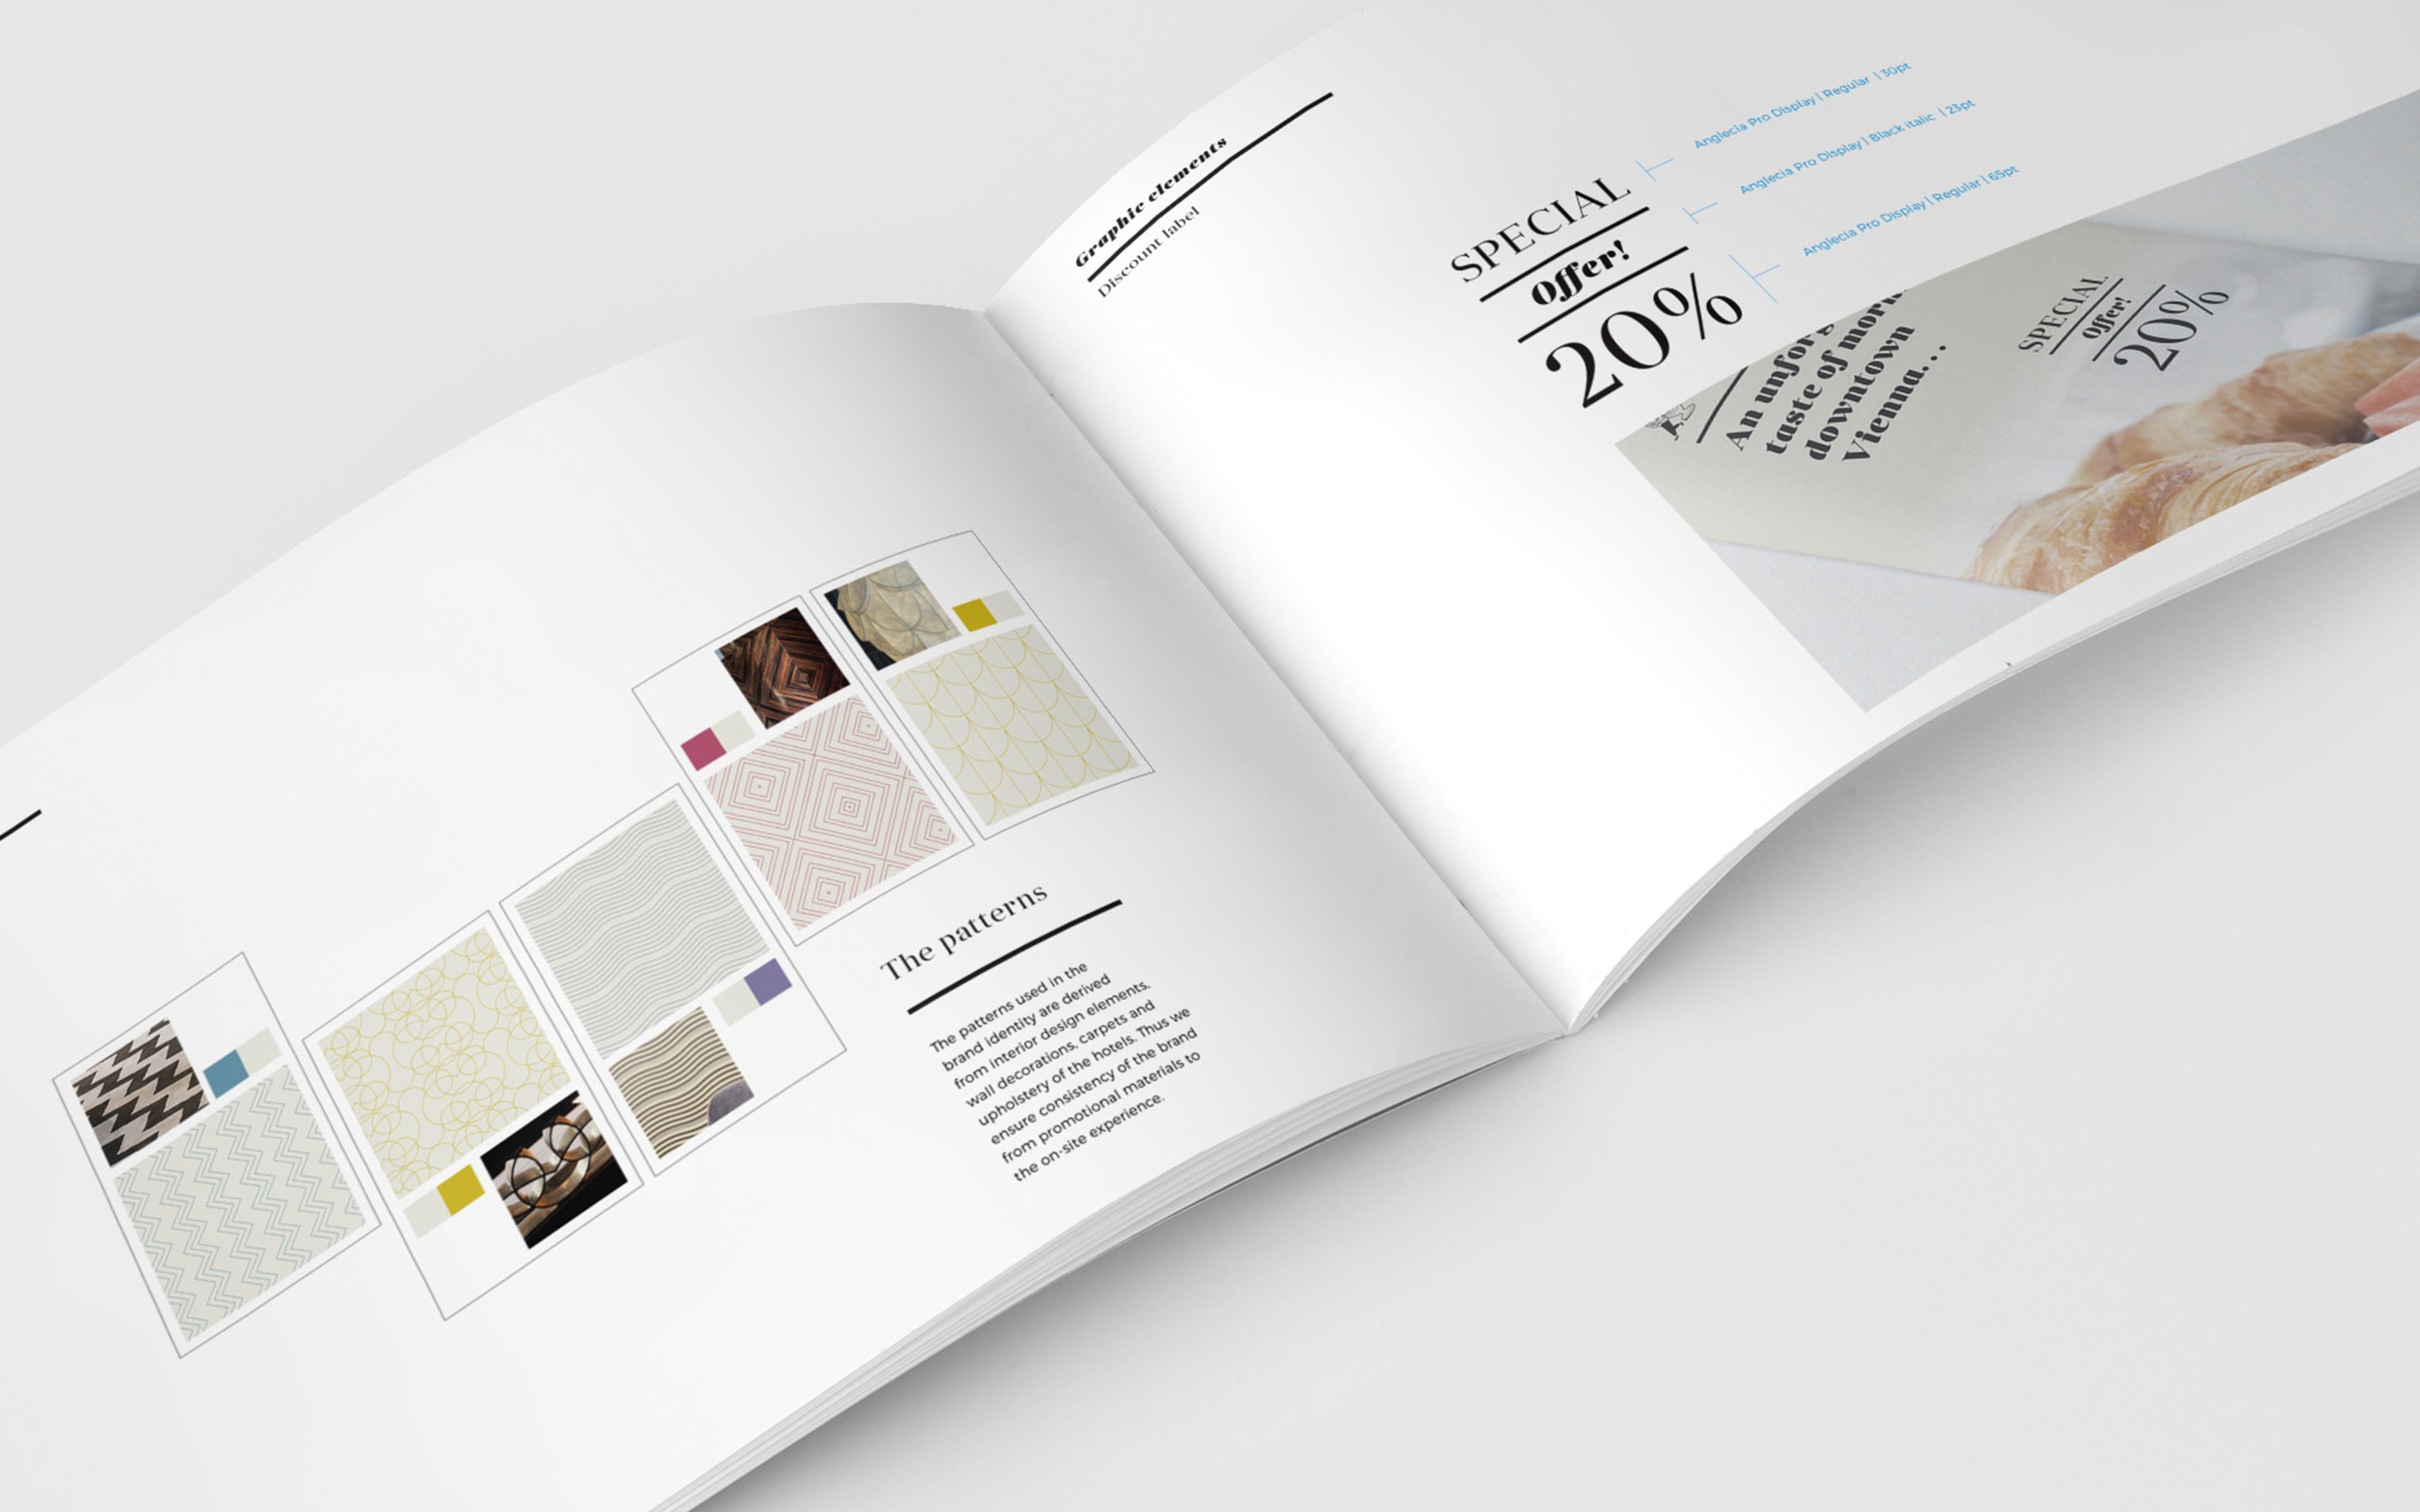 Hotels Topazz & Lamee Design Guidelines